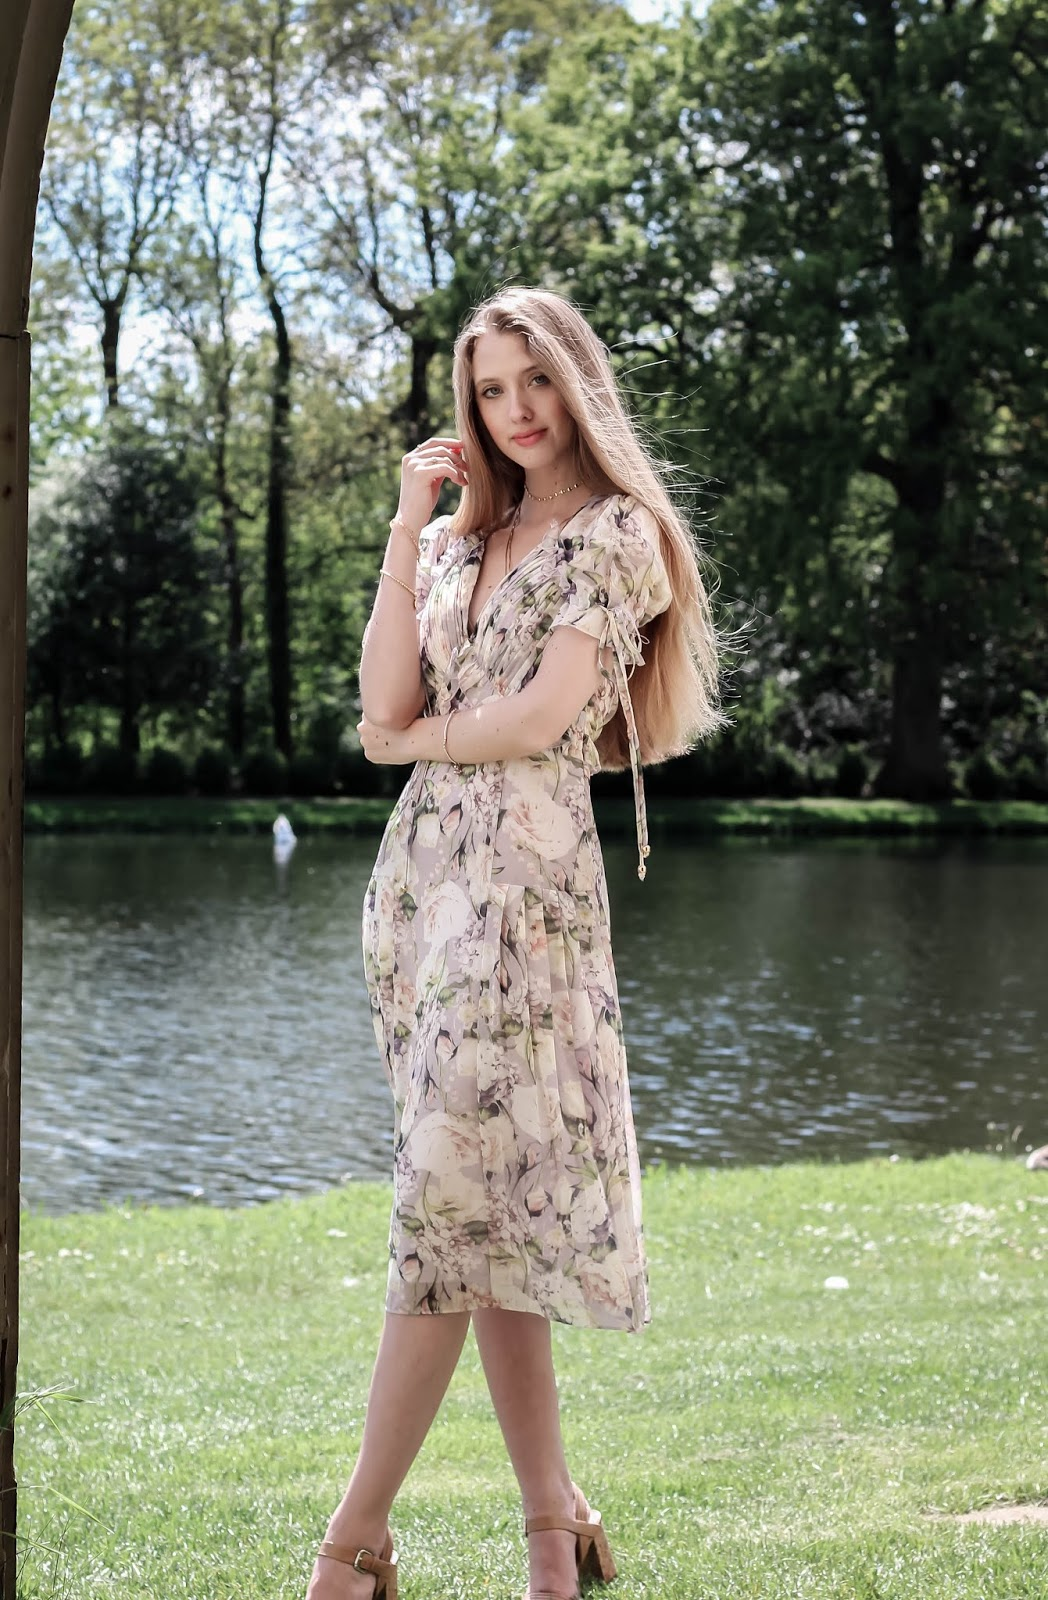 Fashion Blogger Styling a Floral Print Tea Dress